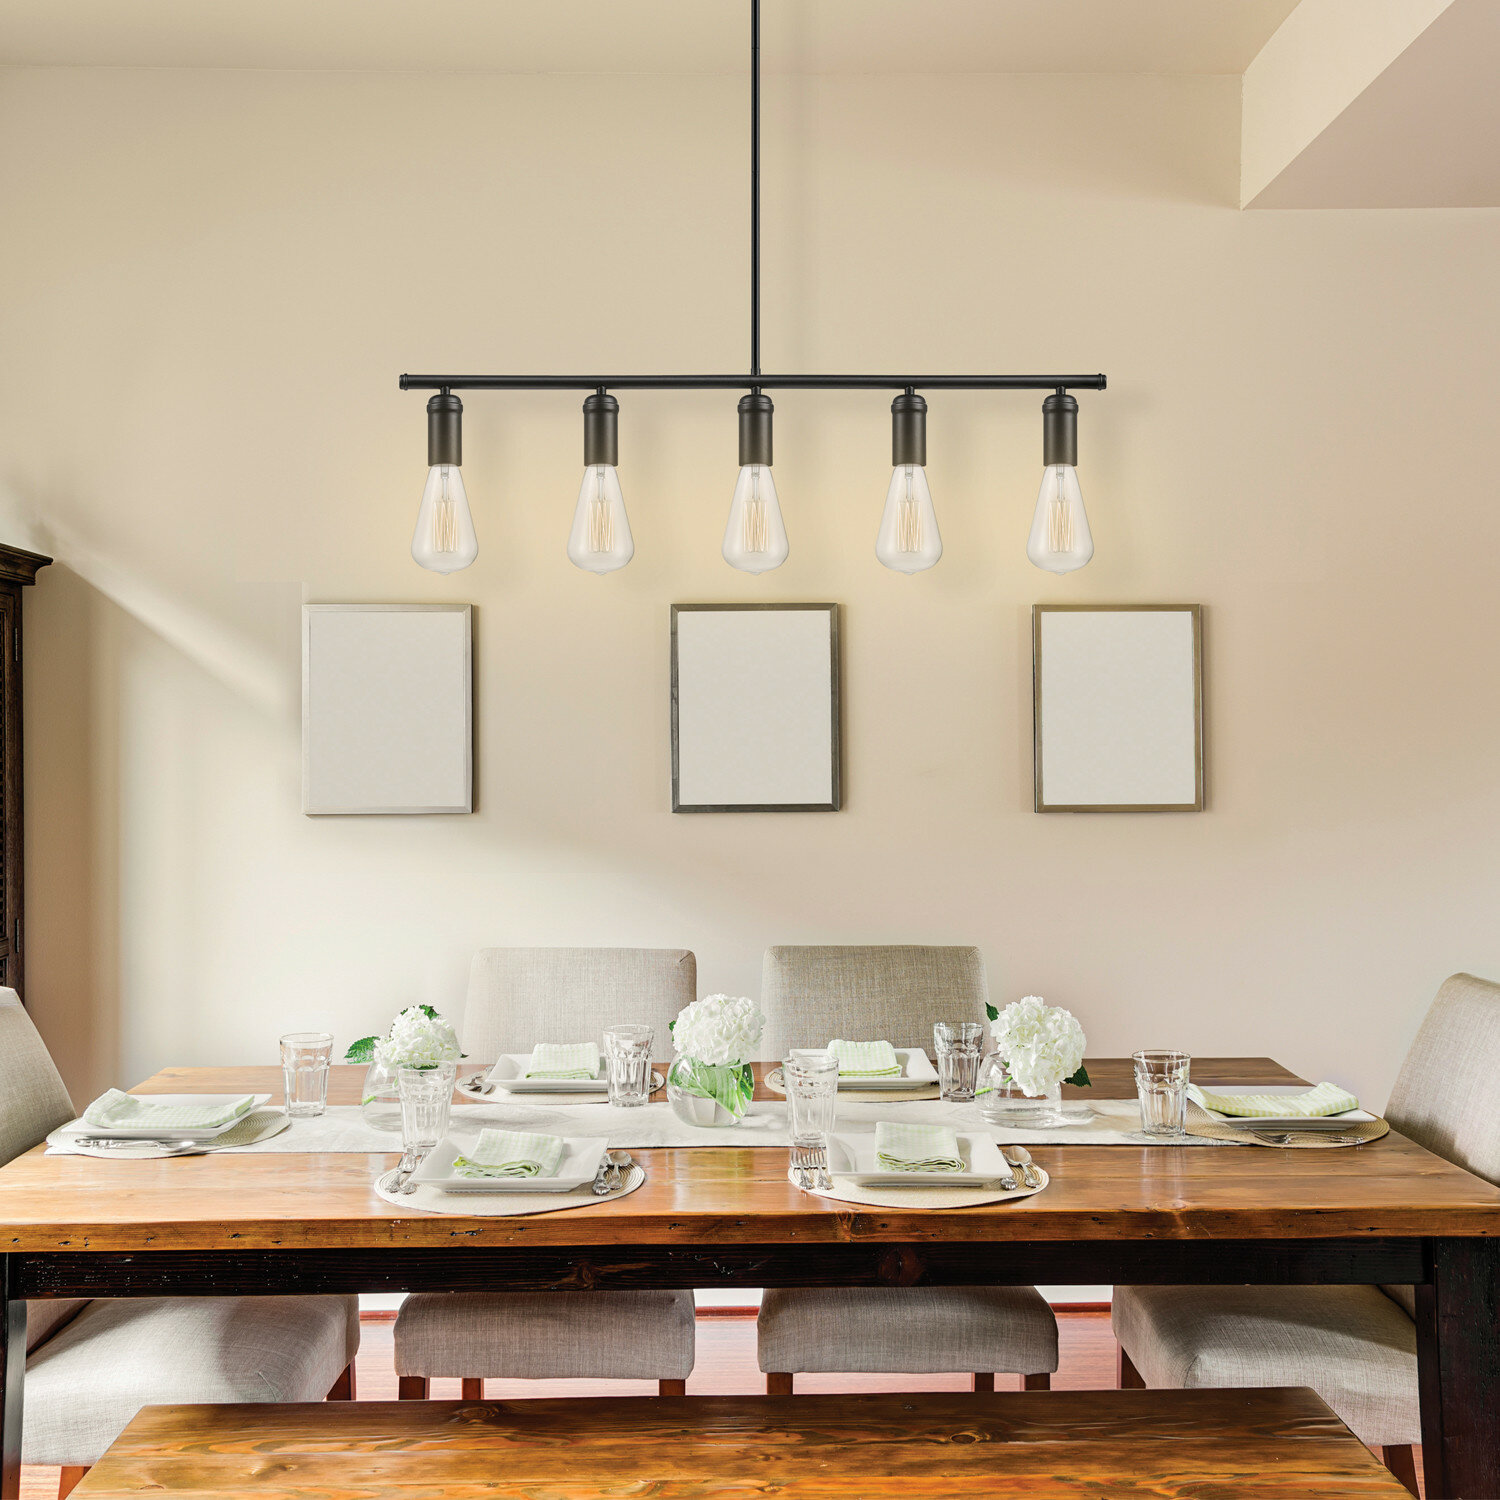 a of i farmhouse lovely pendant lights h installing sink strainer kitchen ideas lovable lighting light design bar pendants creative modern long rajasweetshouston fresh